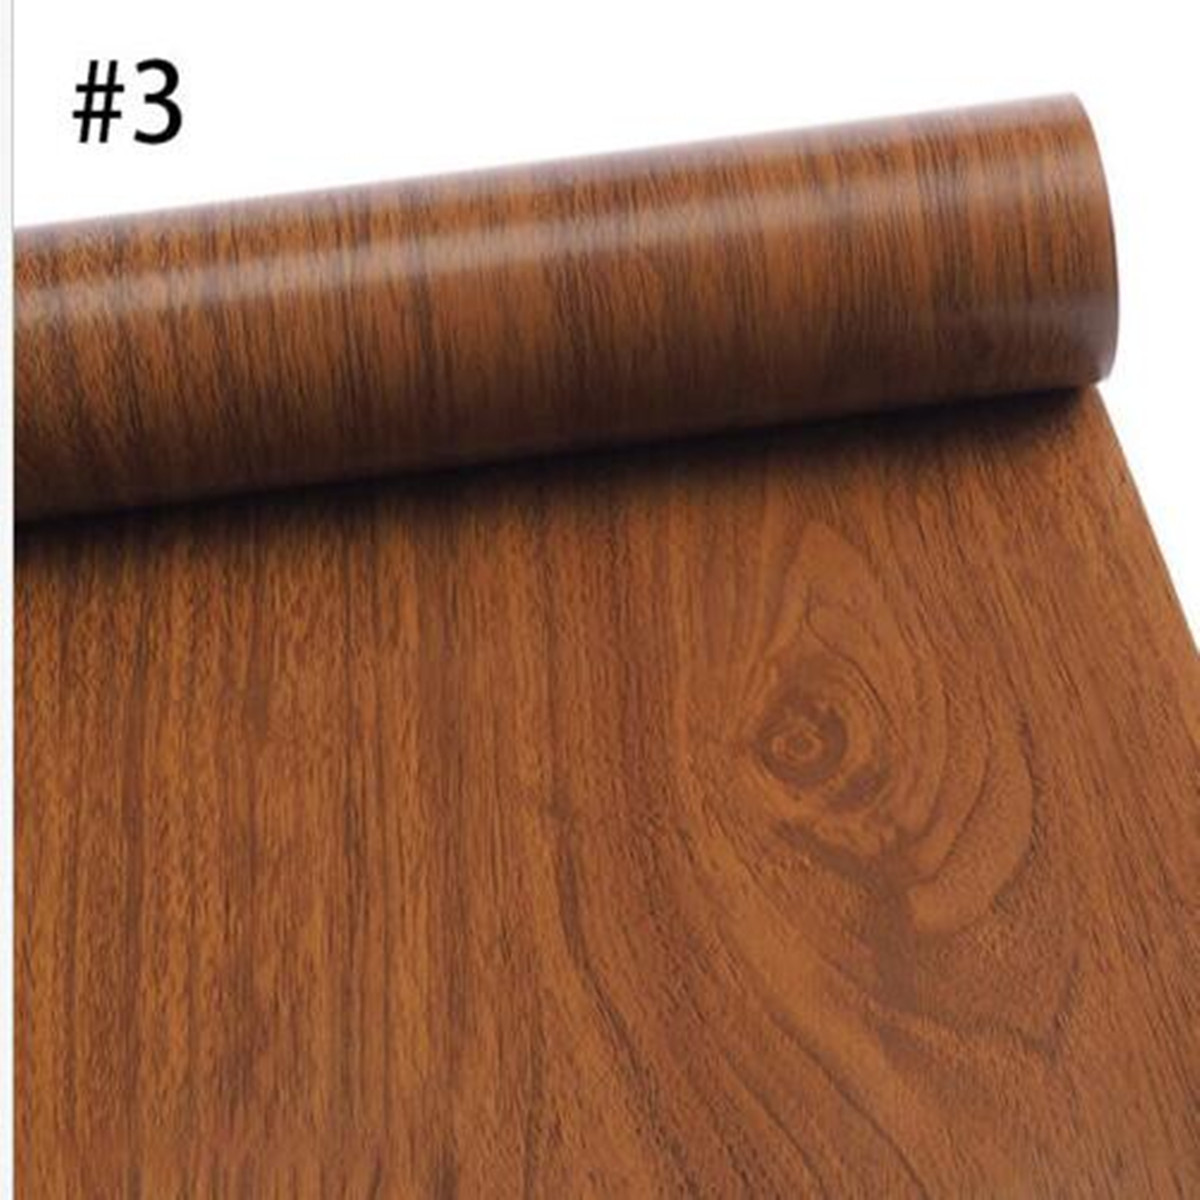 covering furniture with contact paper. Wood Grain Contact Paper Self Adhesive Vinyl Shelf Liner Covering For  Kitchen Countertop Cabinets Drawer Furniture Wall Decal Covering Furniture With Contact Paper E